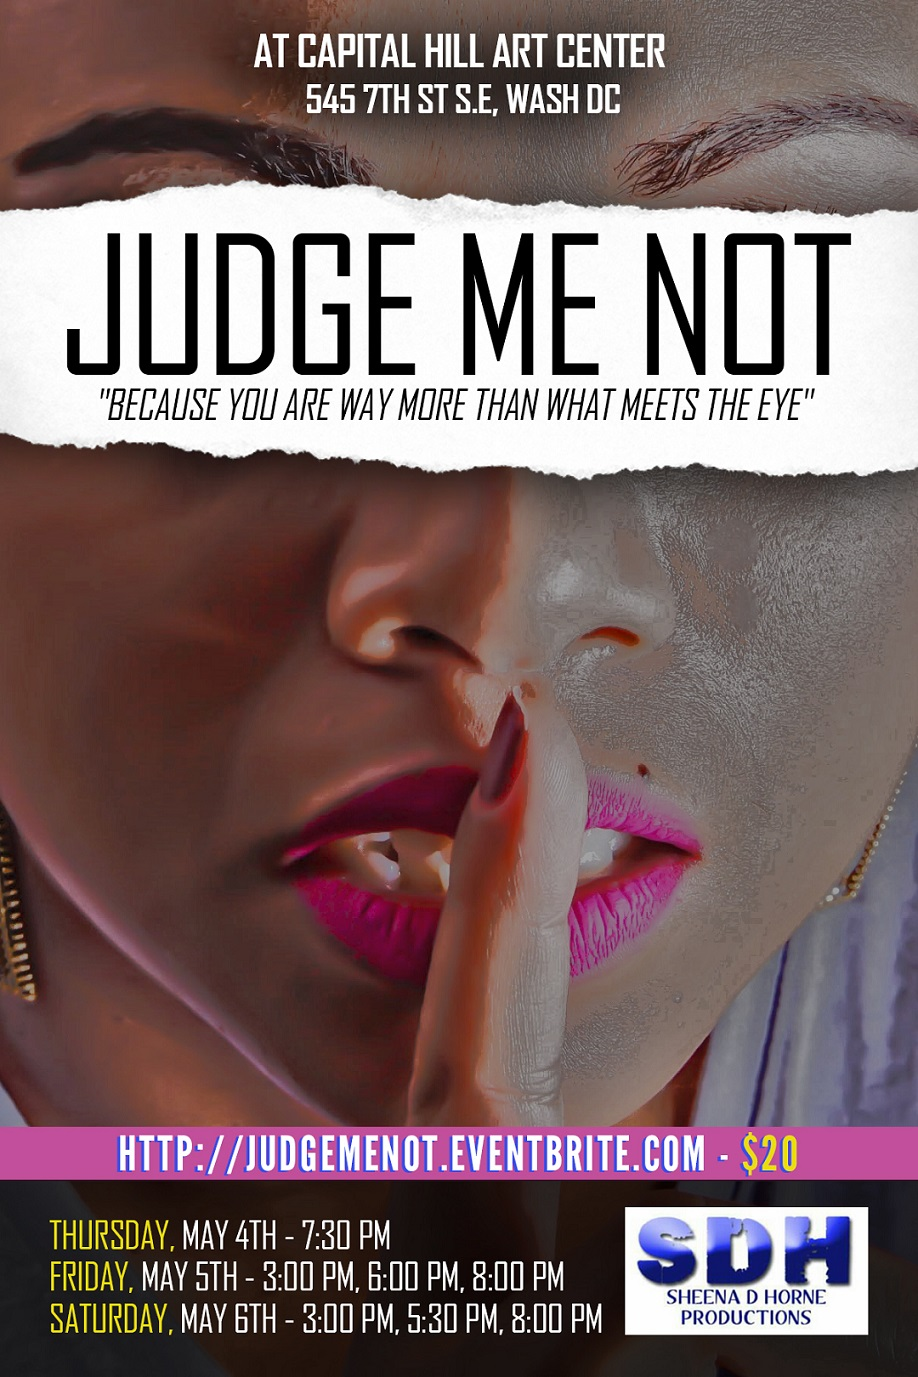 Theatre News: 'Judge Me Not' Monologue Show, May 4-6